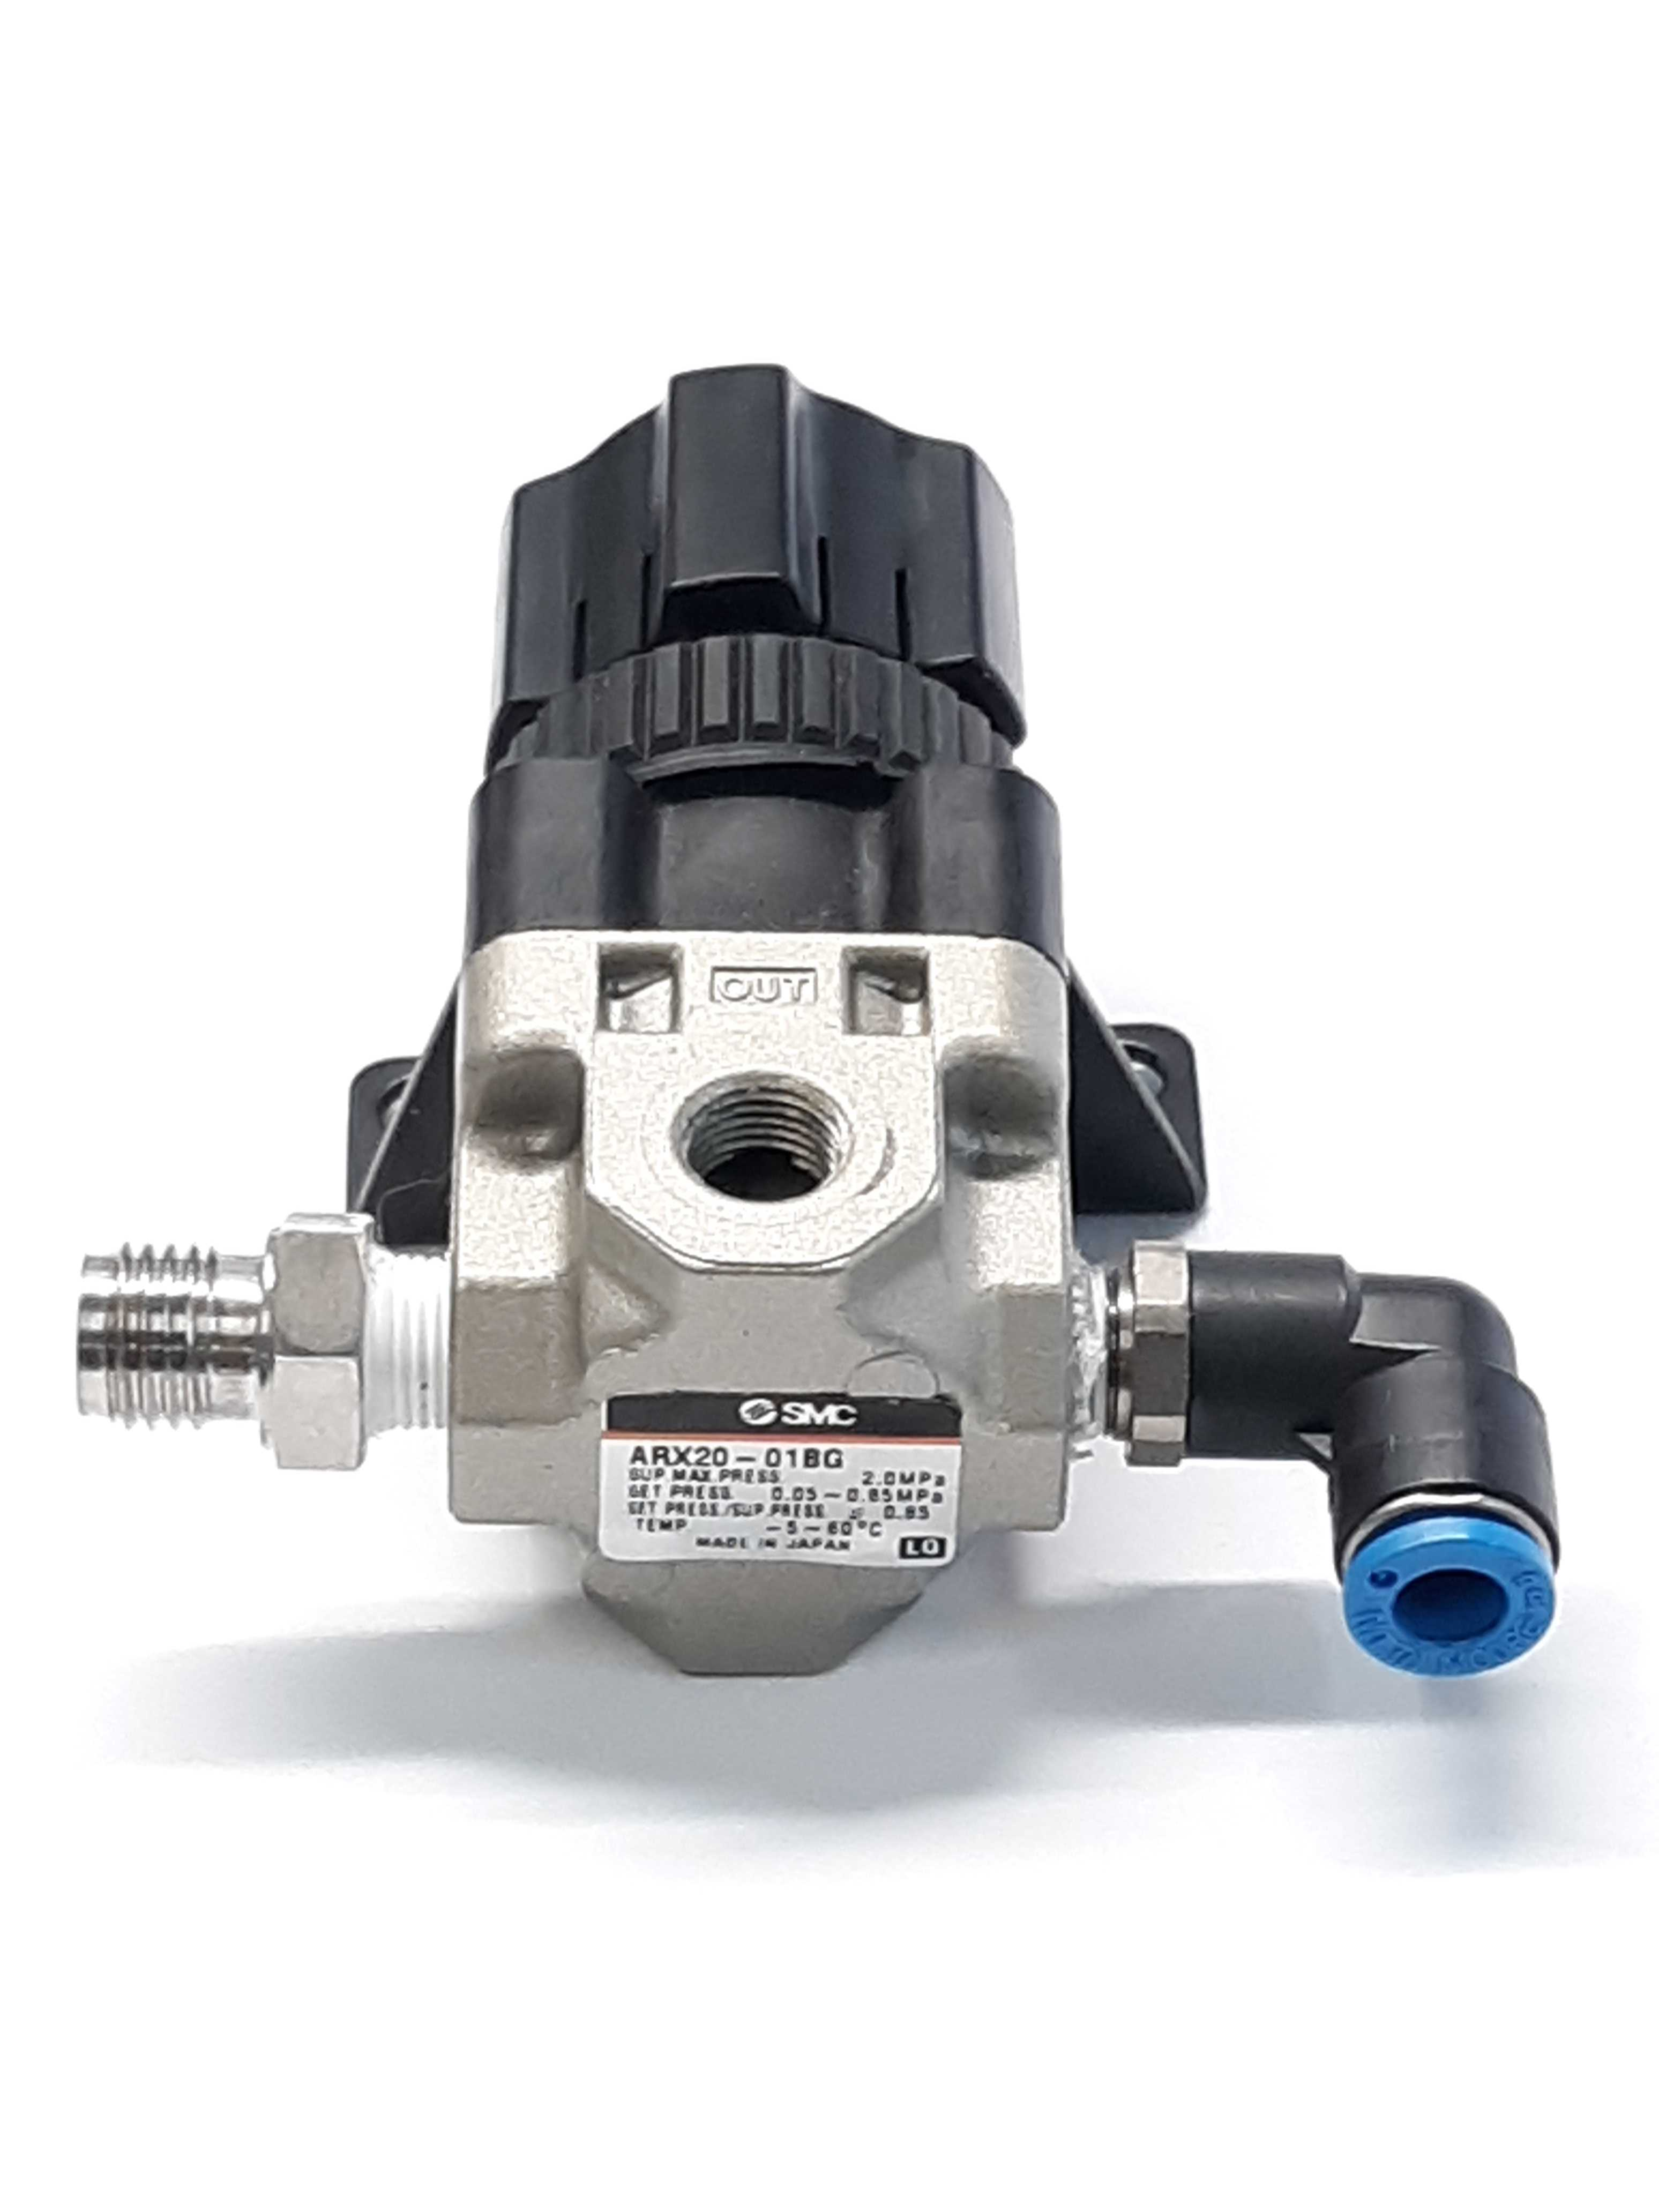 SMC ARX20-01BG Regulator Valve